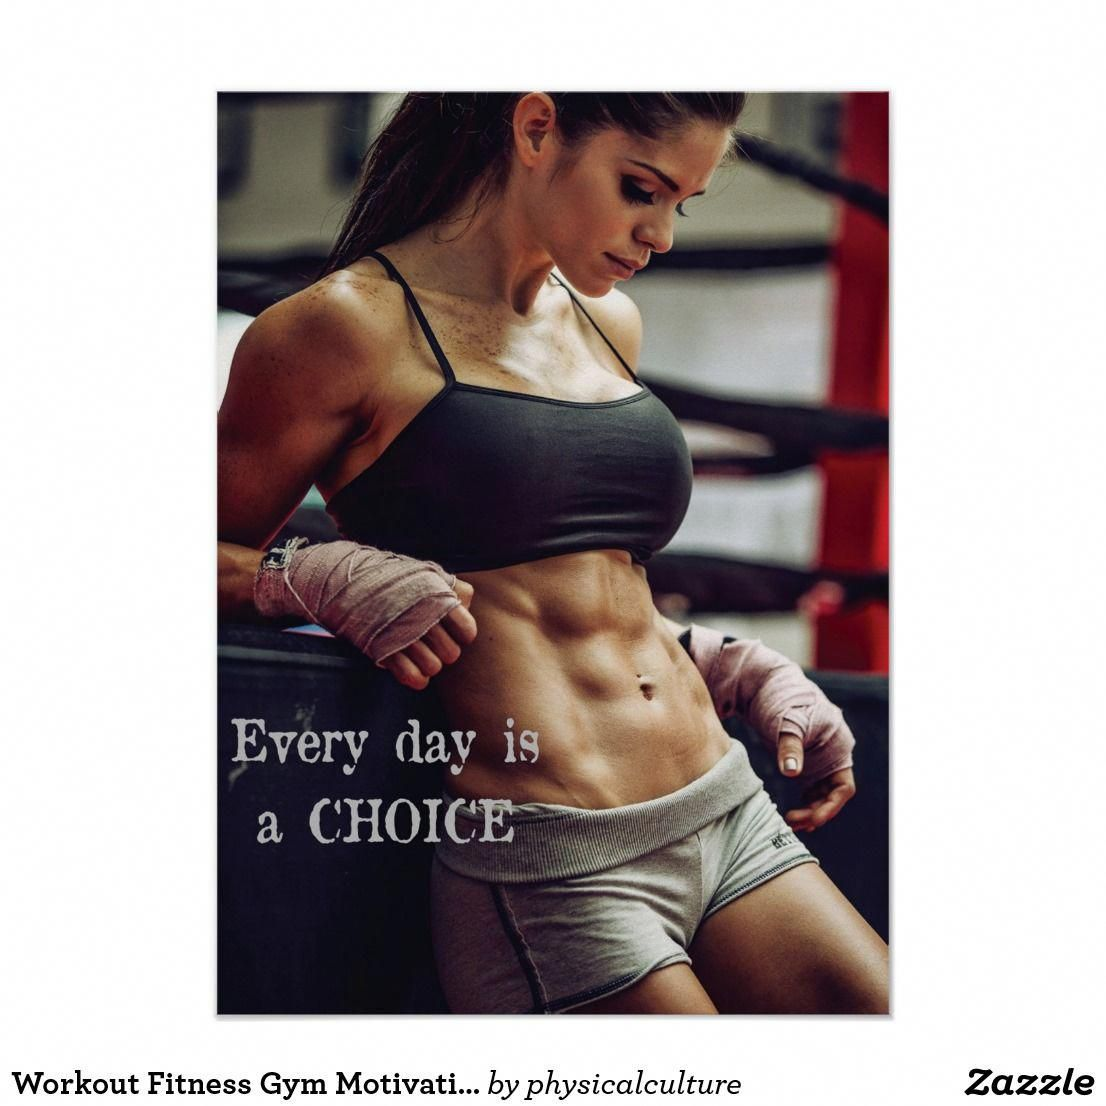 Workout Motivational Poster | Zazzle.com